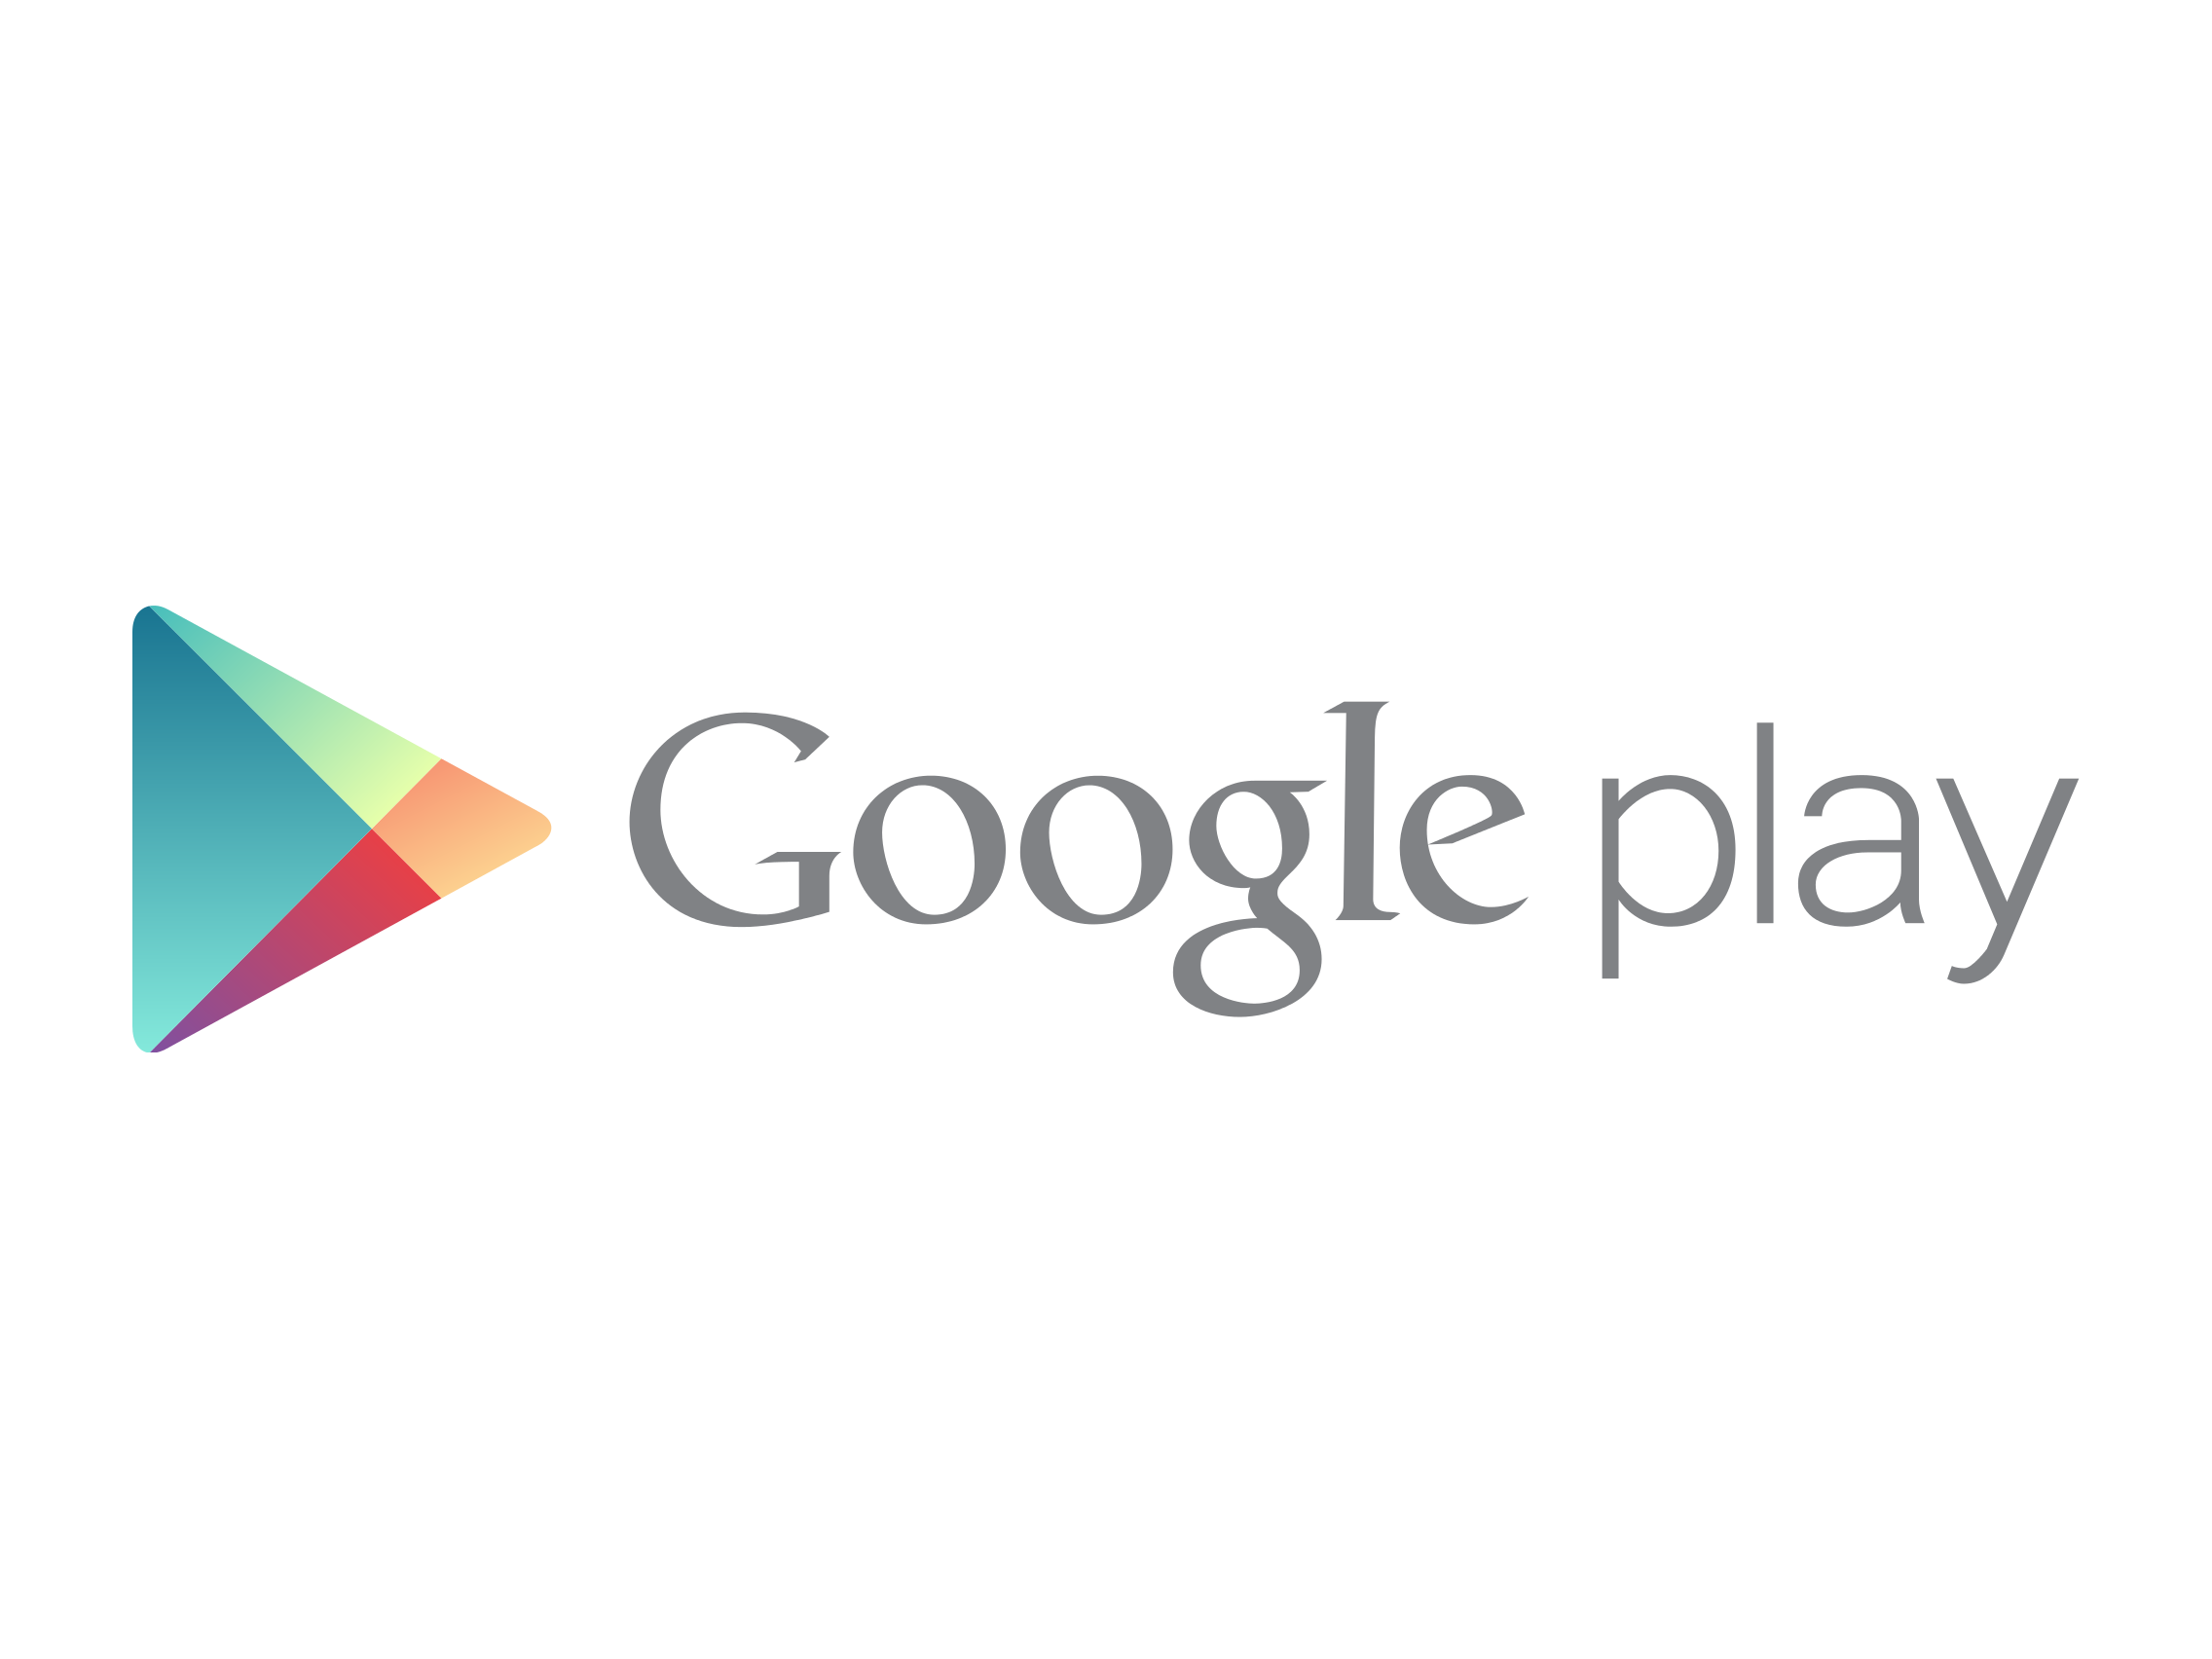 google-play-logo-wordmark-logok-10175.png